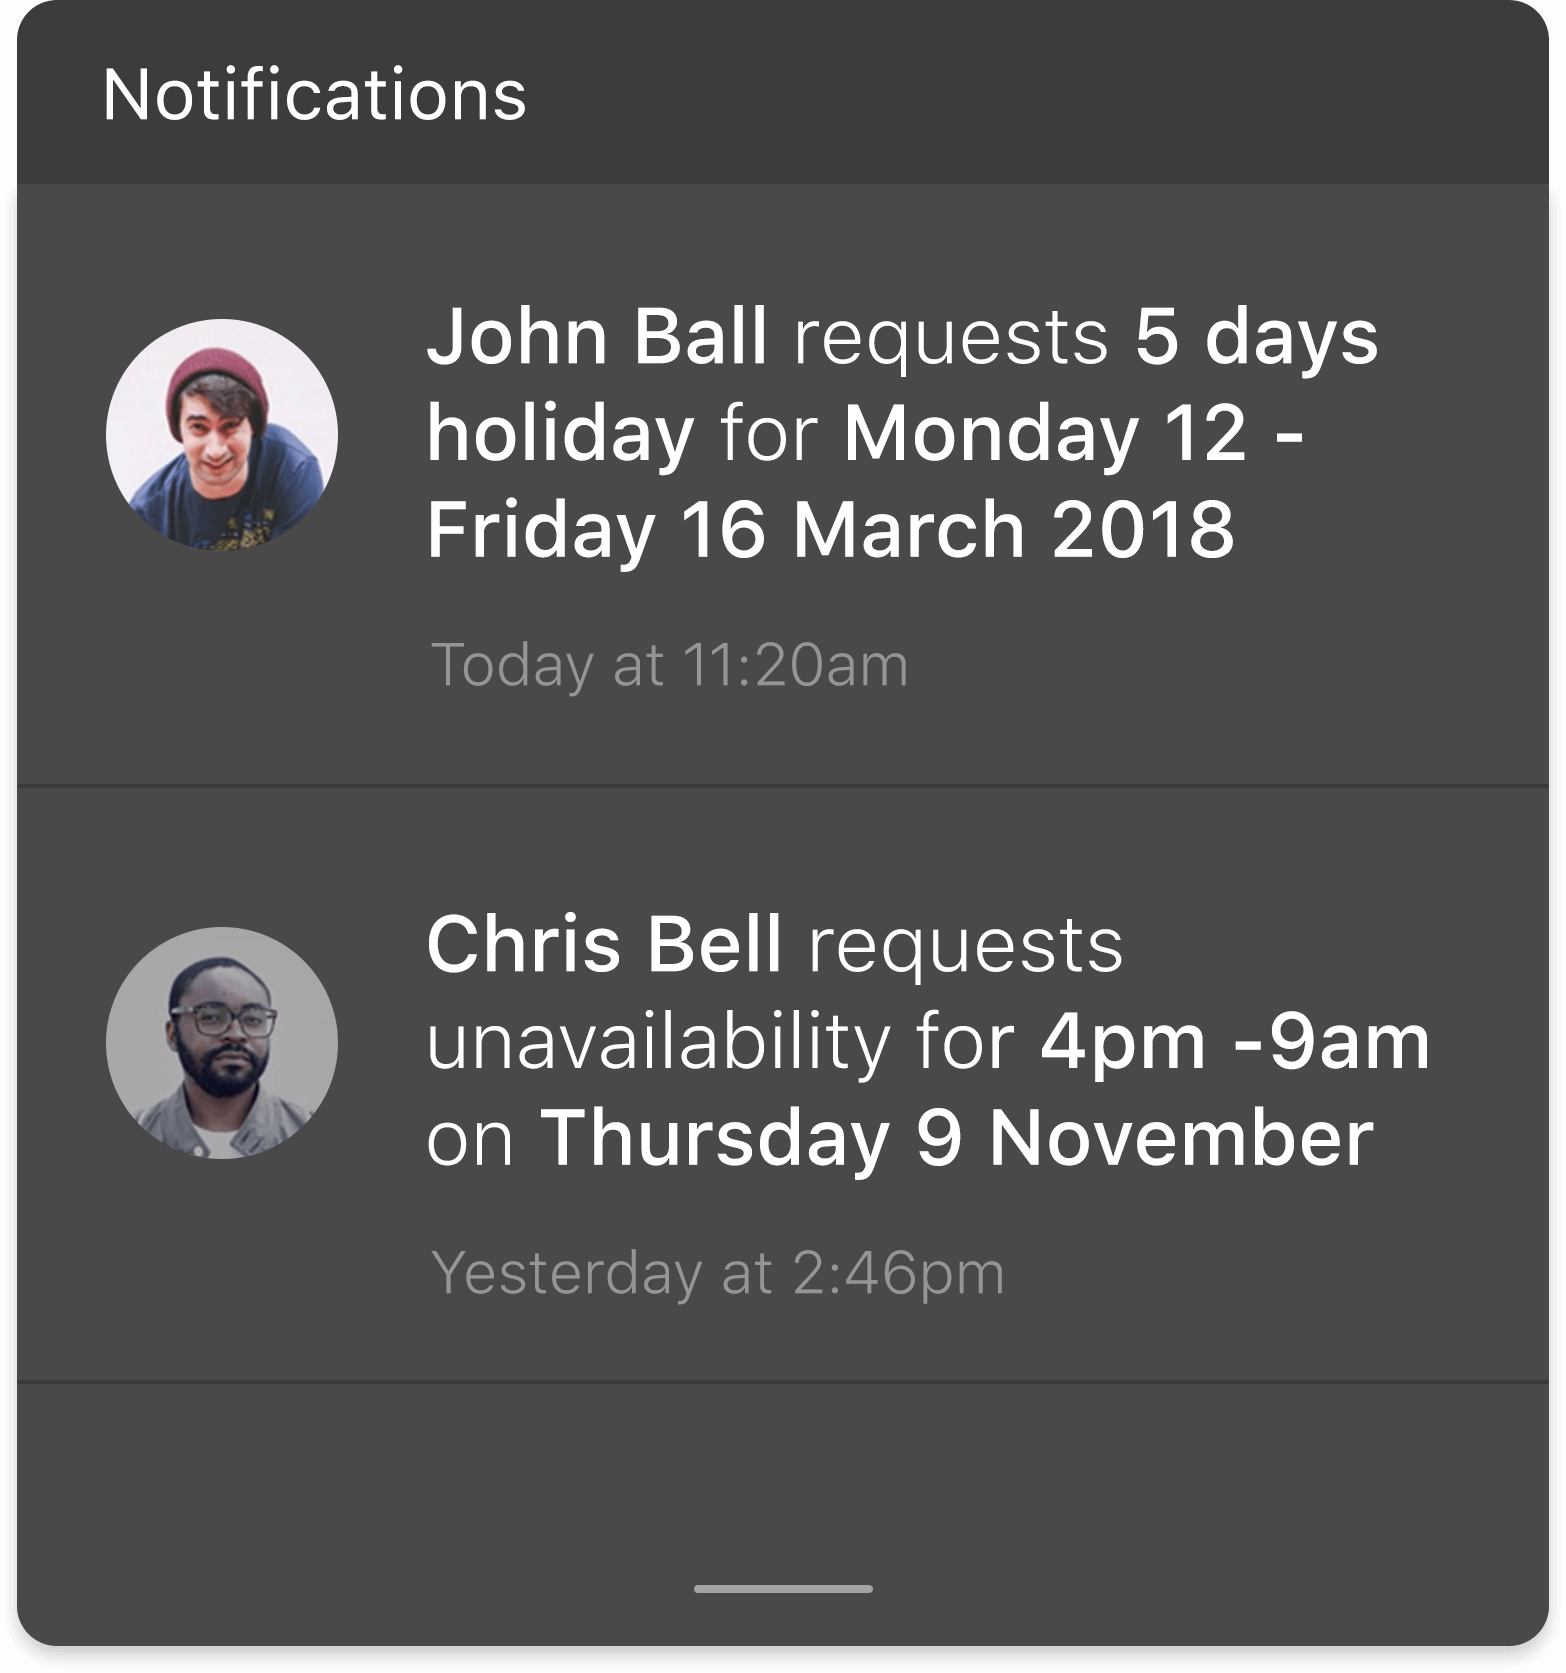 Managers received notifications when employees make shift change or time off requests